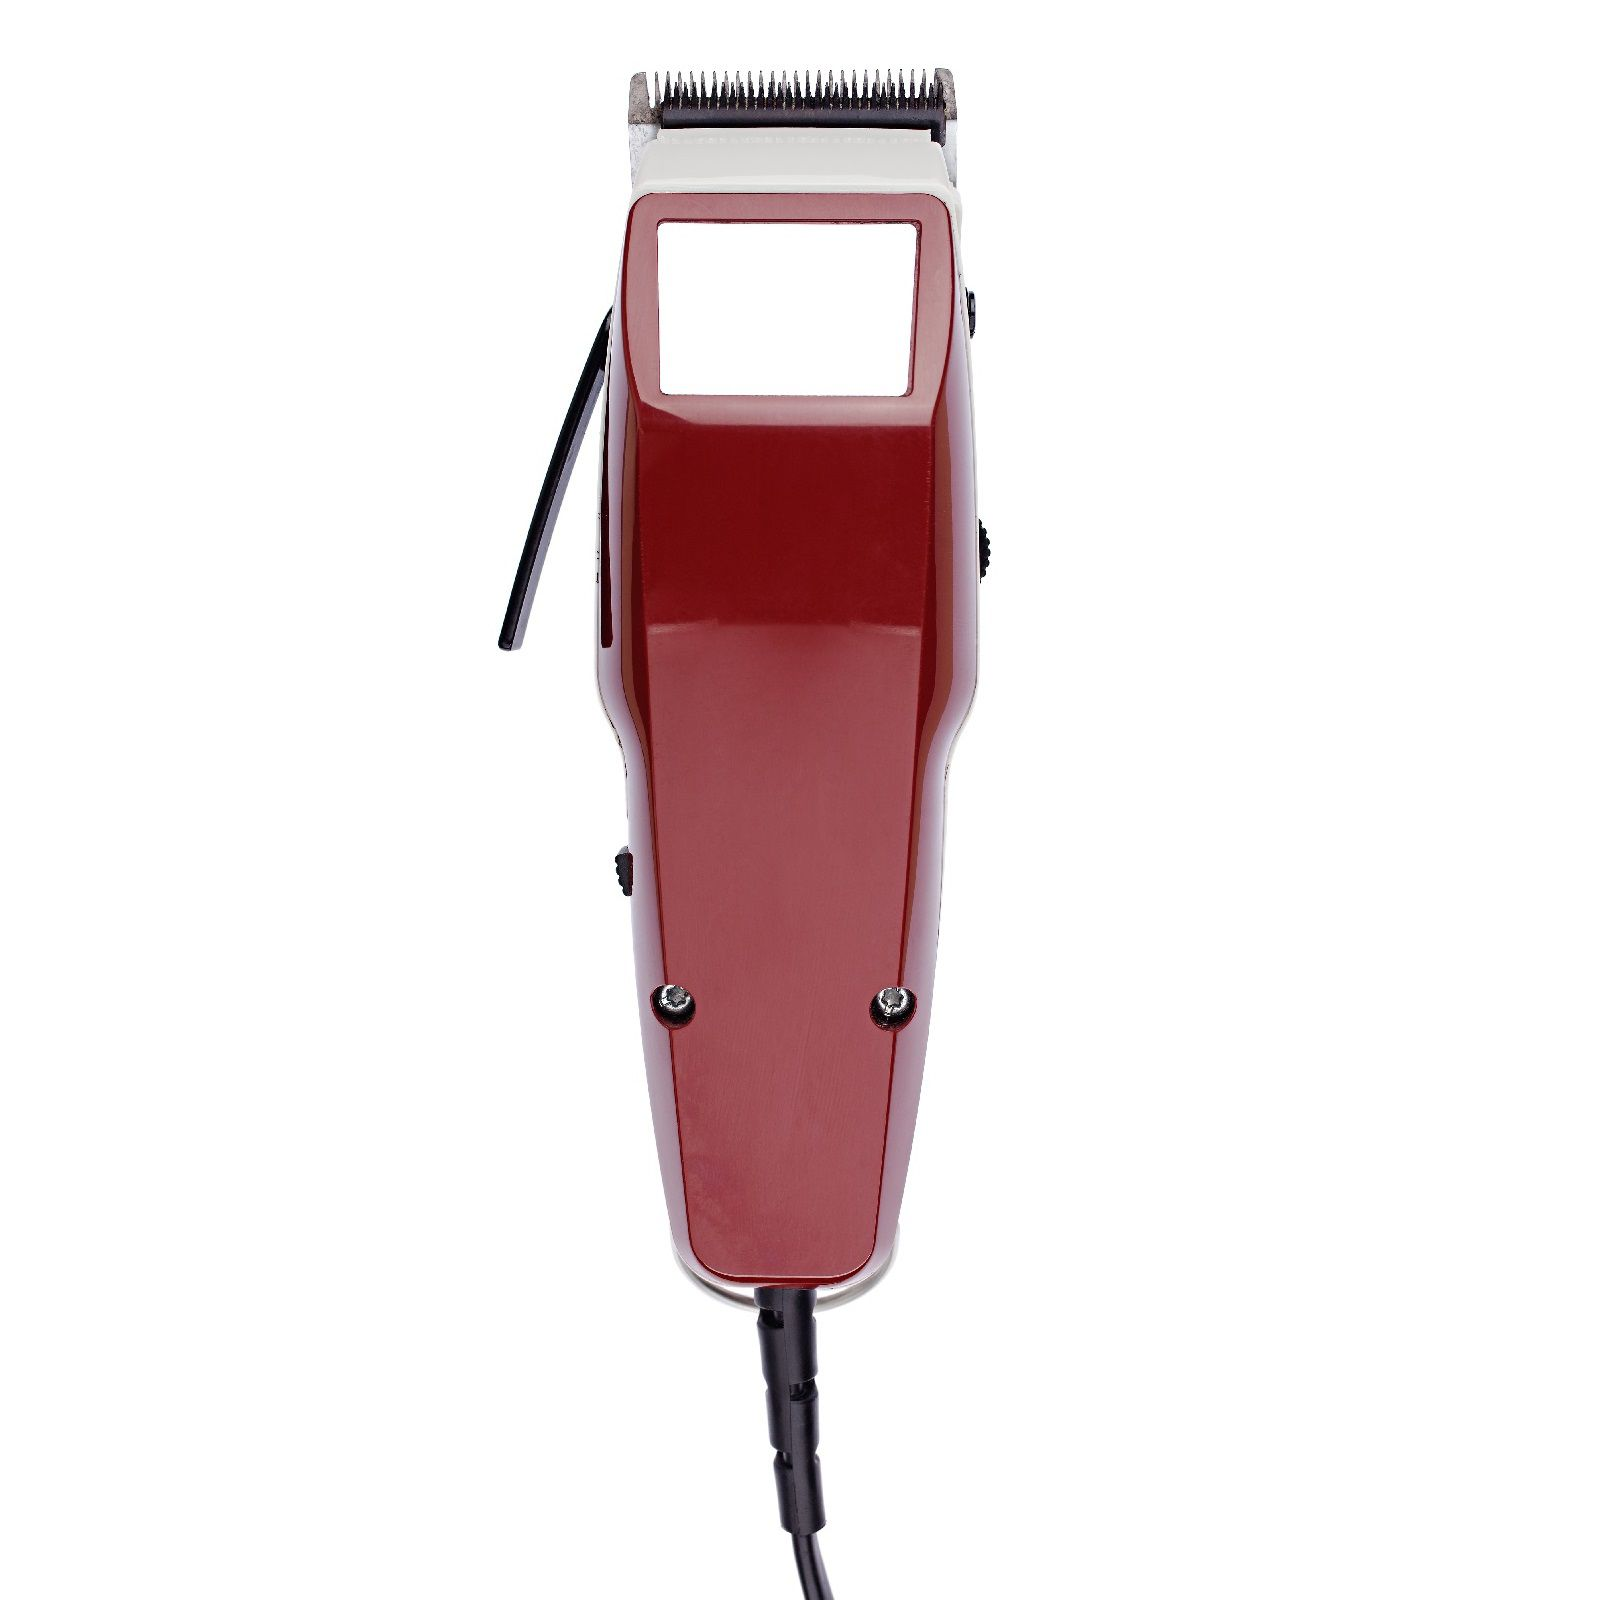 Grooming Pubic Hair With Regular Clippers